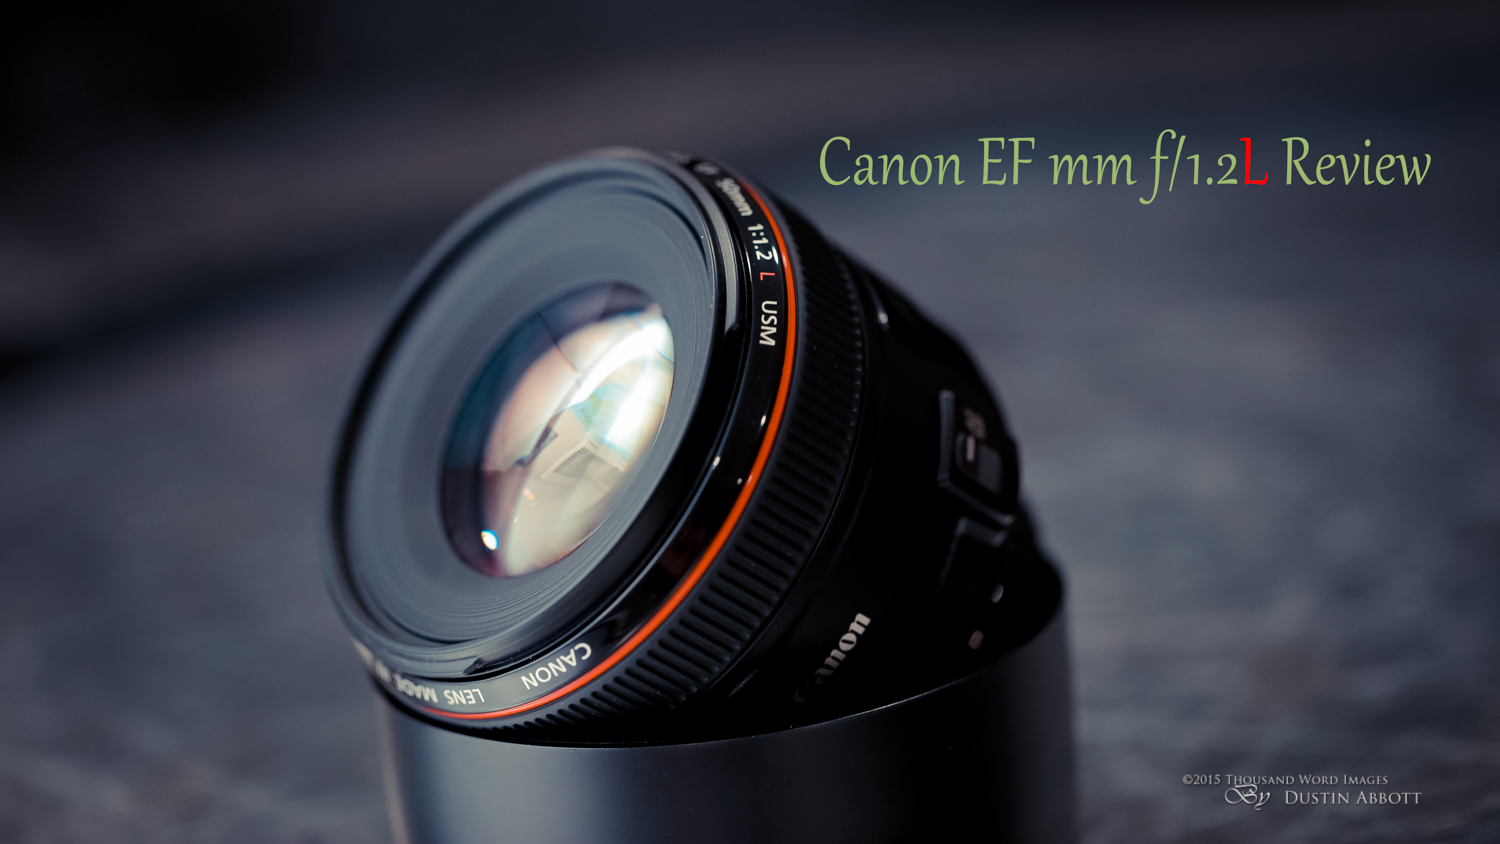 Canon EF 50mm f/1.2L USM Review